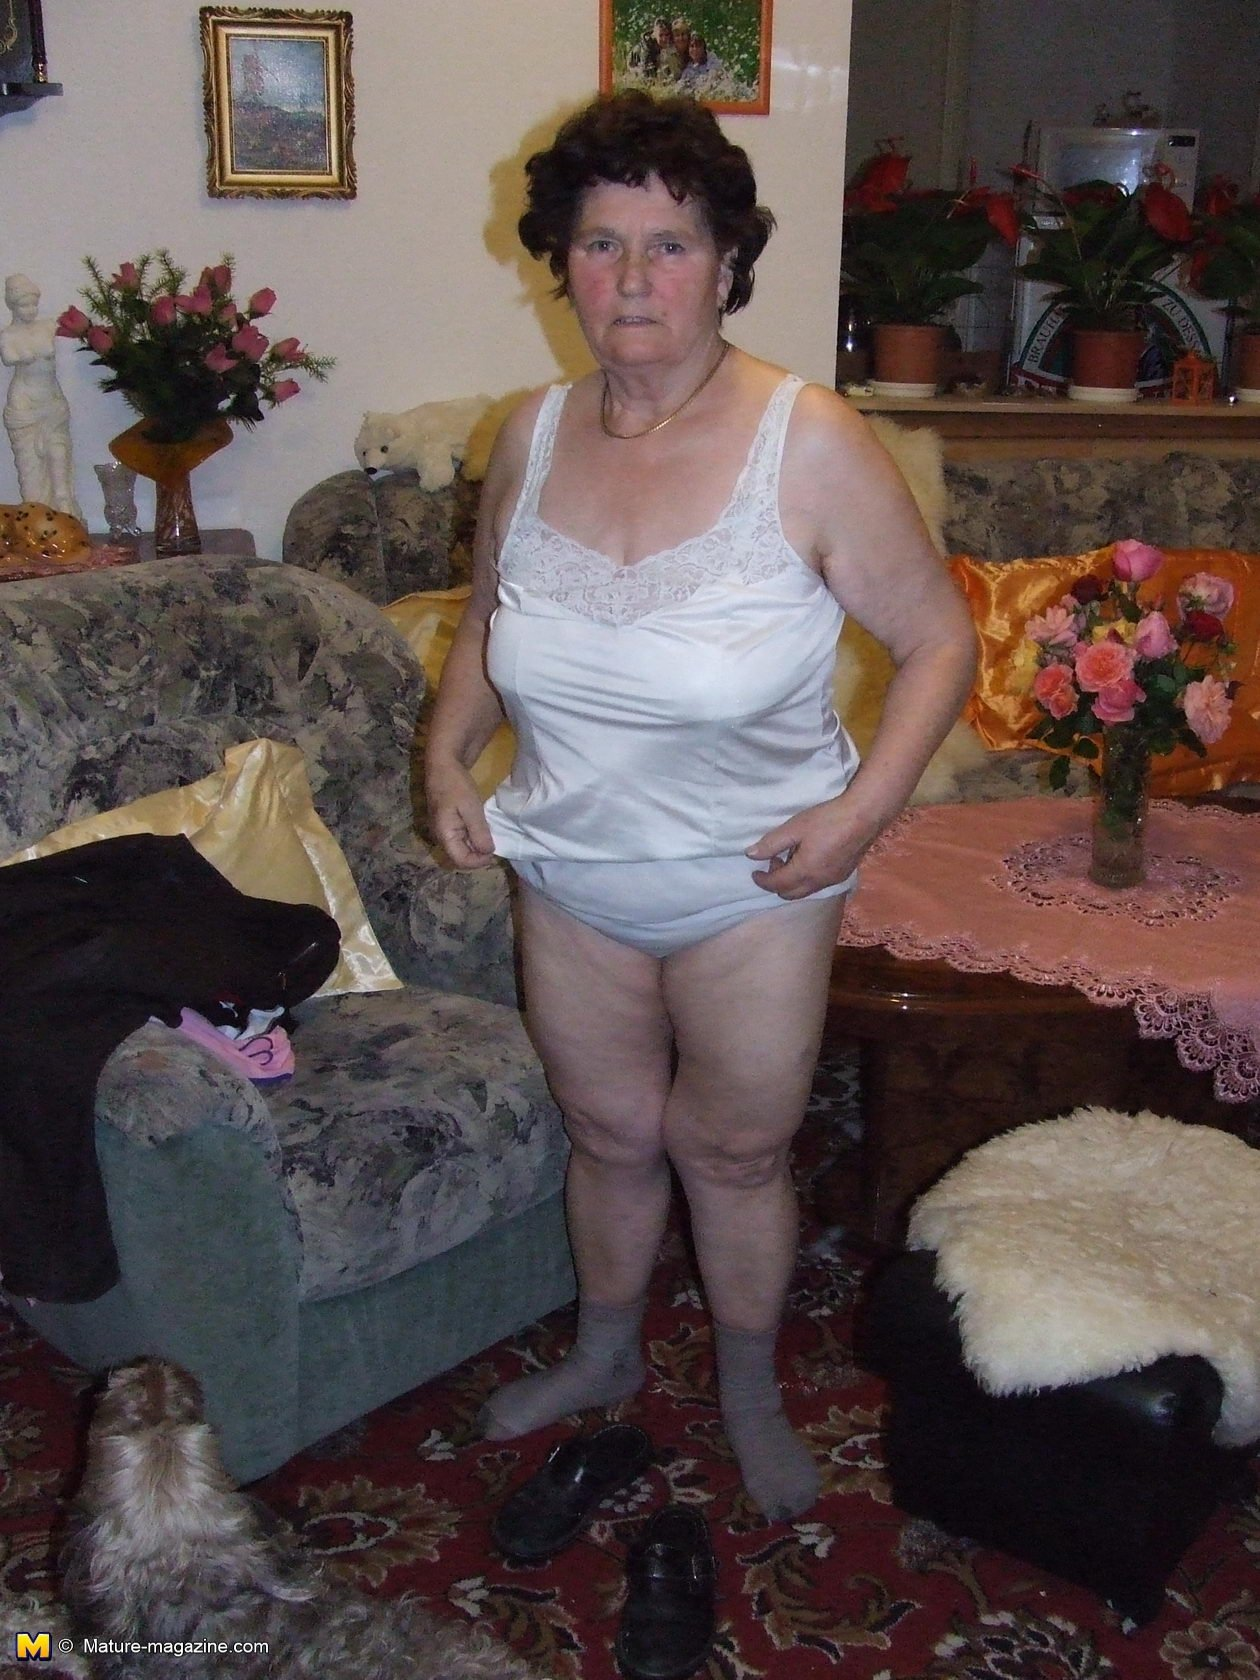 Amateur stripper powered by phpbb fat grannies in tights